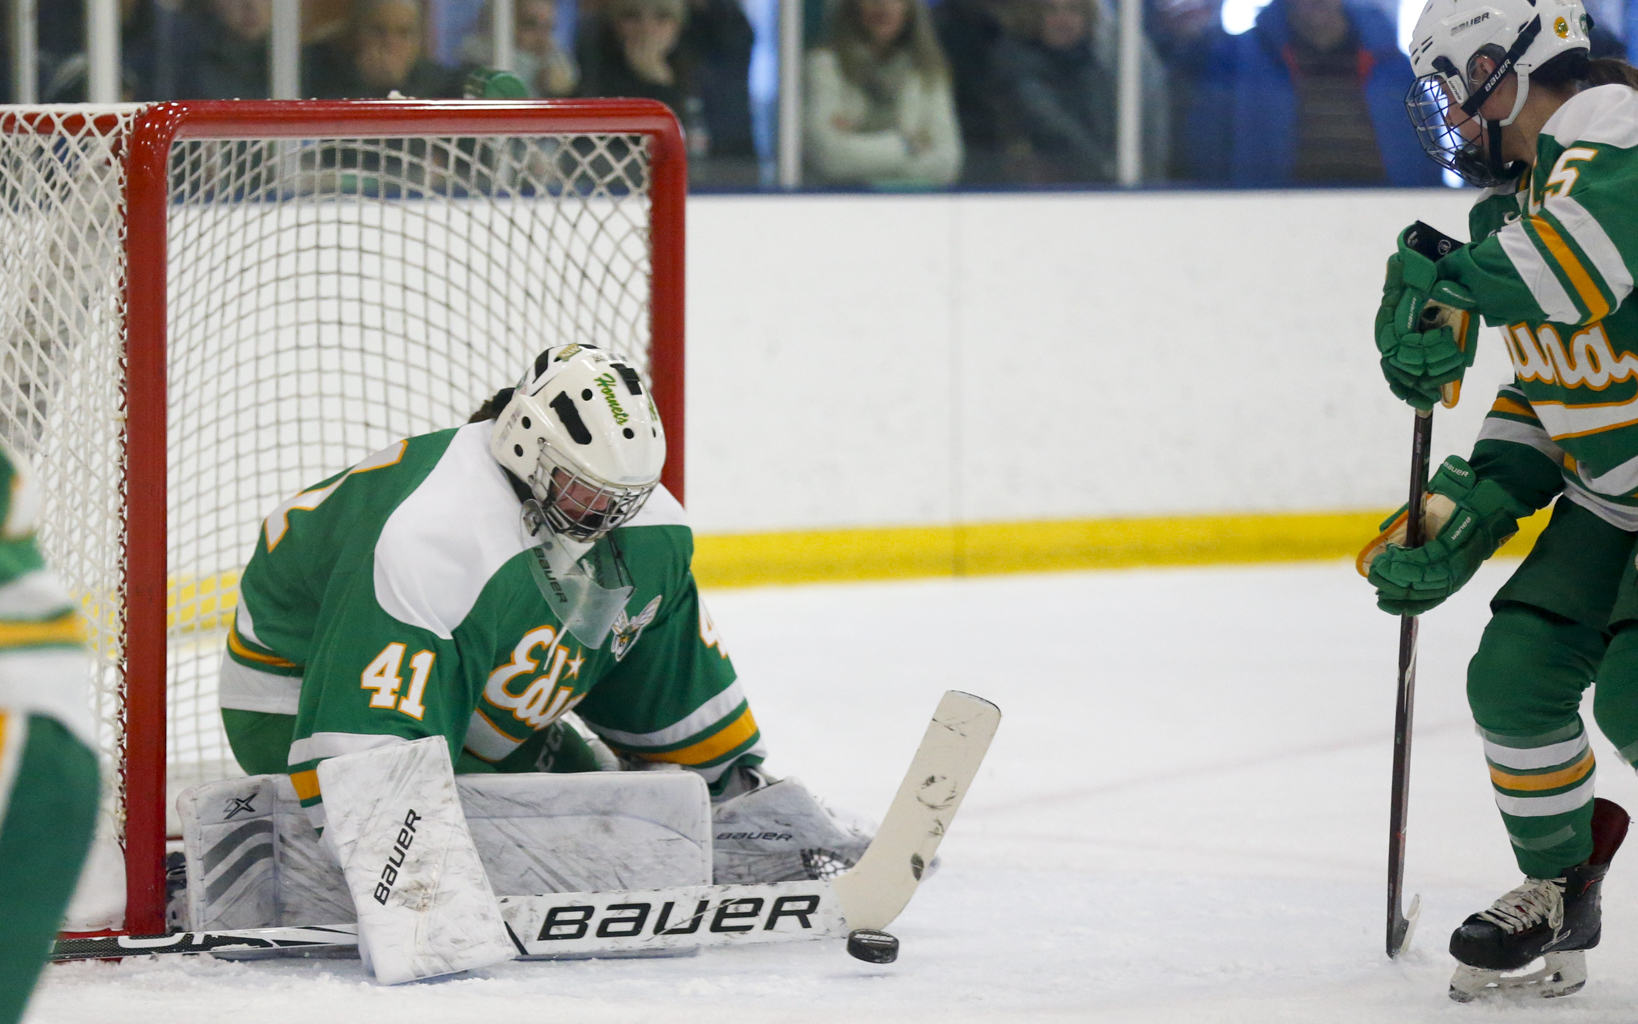 Edina's Uma Corniea (41) makes a stick save against Blake Saturday afternoon. Corniea had 22 saves in the Hornets' 4-1 victory over the Bears at Blake Ice Arena. Photo by Jeff Lawler, SportsEngine